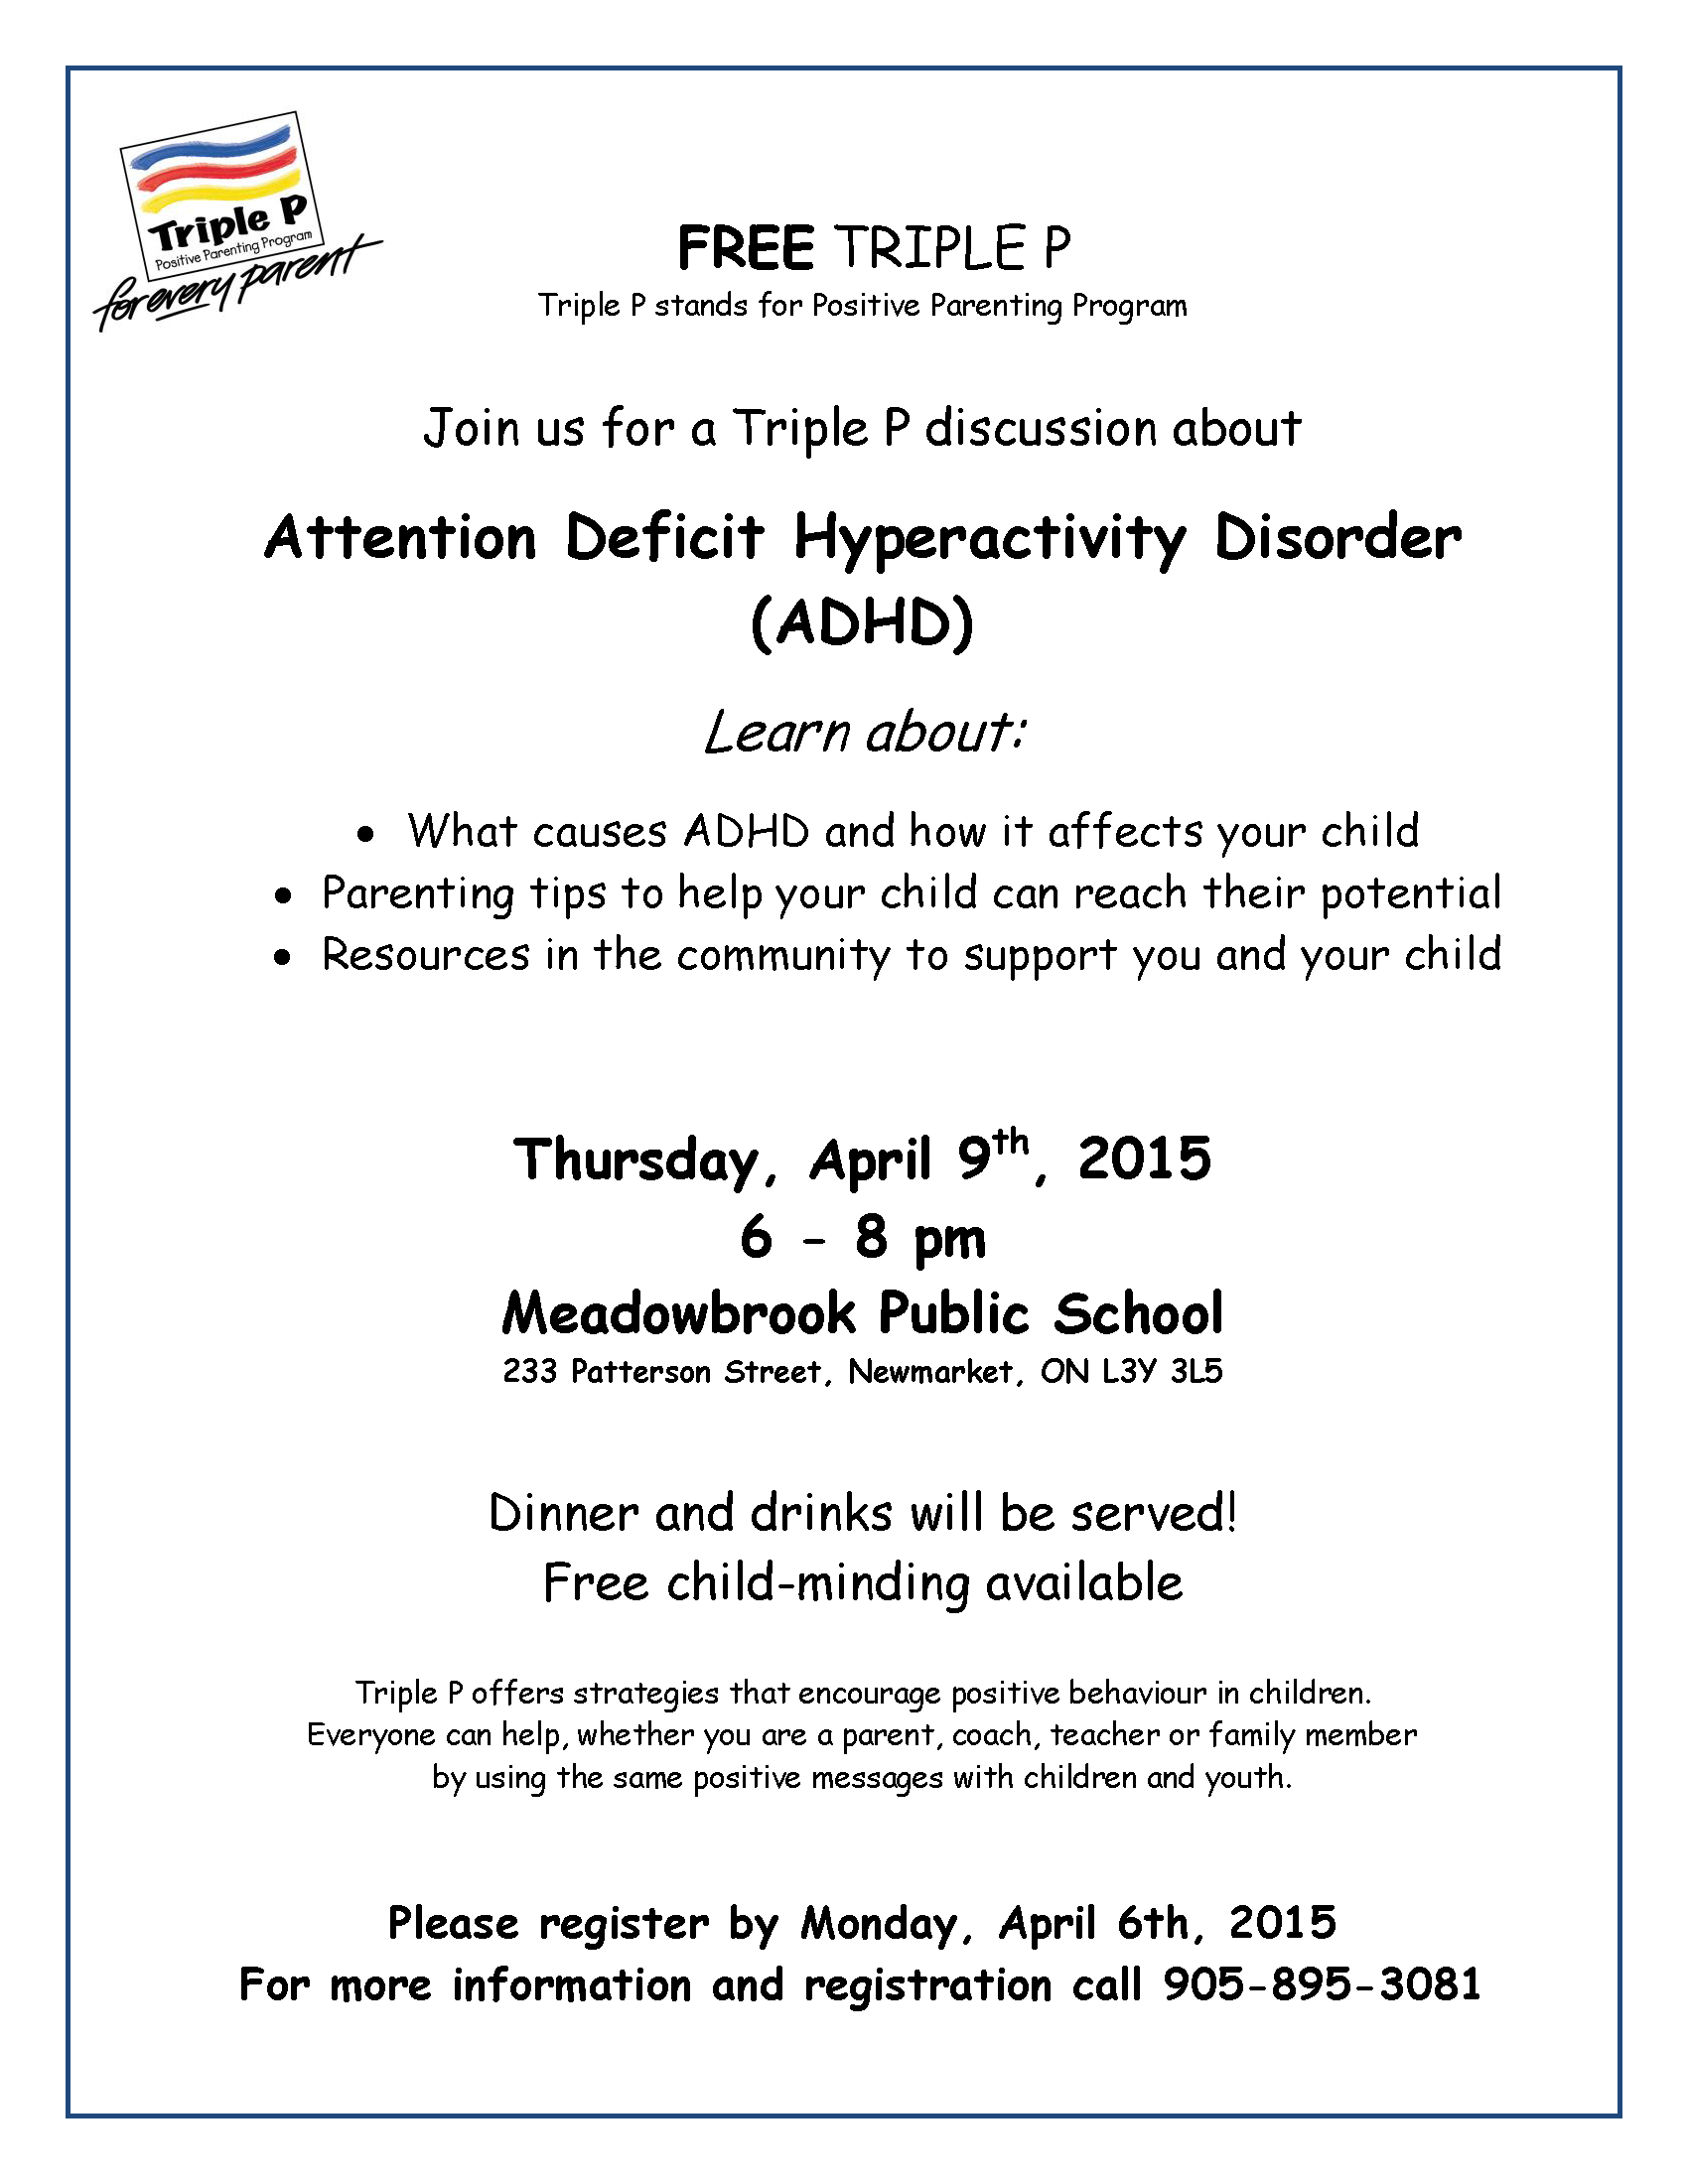 Triple P ADHD Meadowbrook Apr 9 2015 (2).png